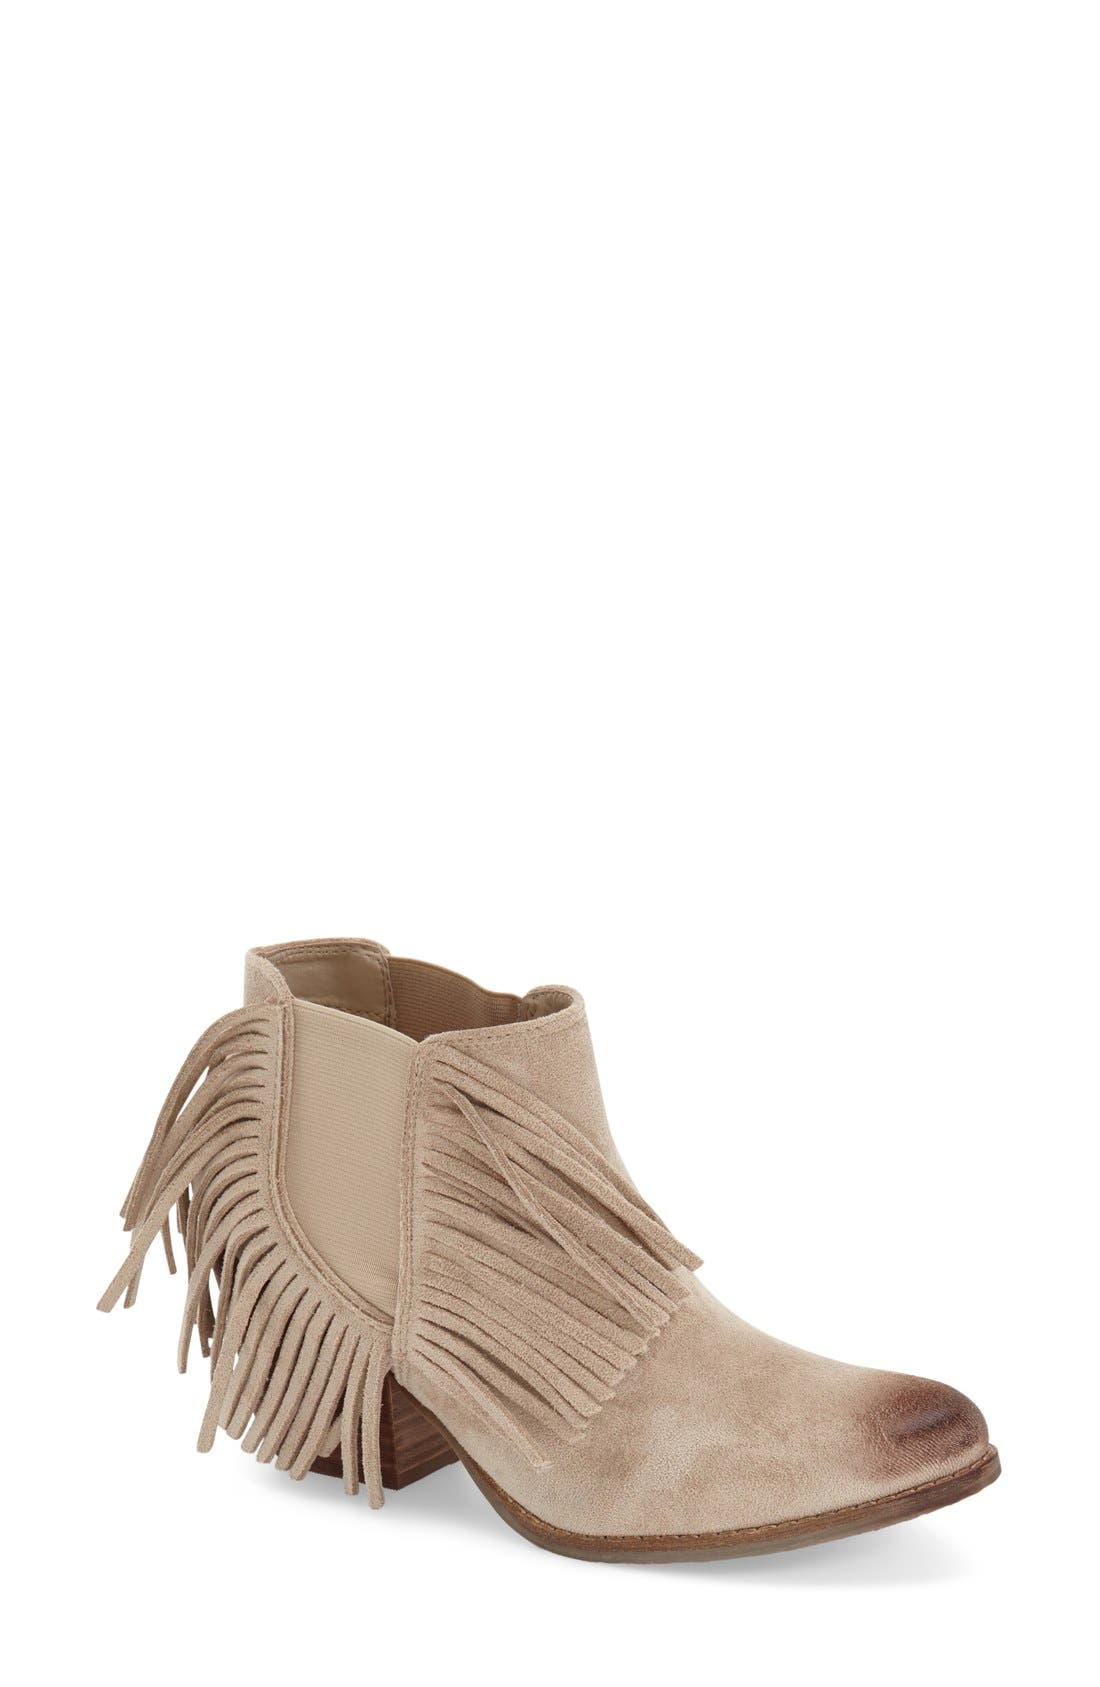 Alternate Image 1 Selected - COCONUTS BY MATISSE 'Lafayette' Fringe Bootie (Women)